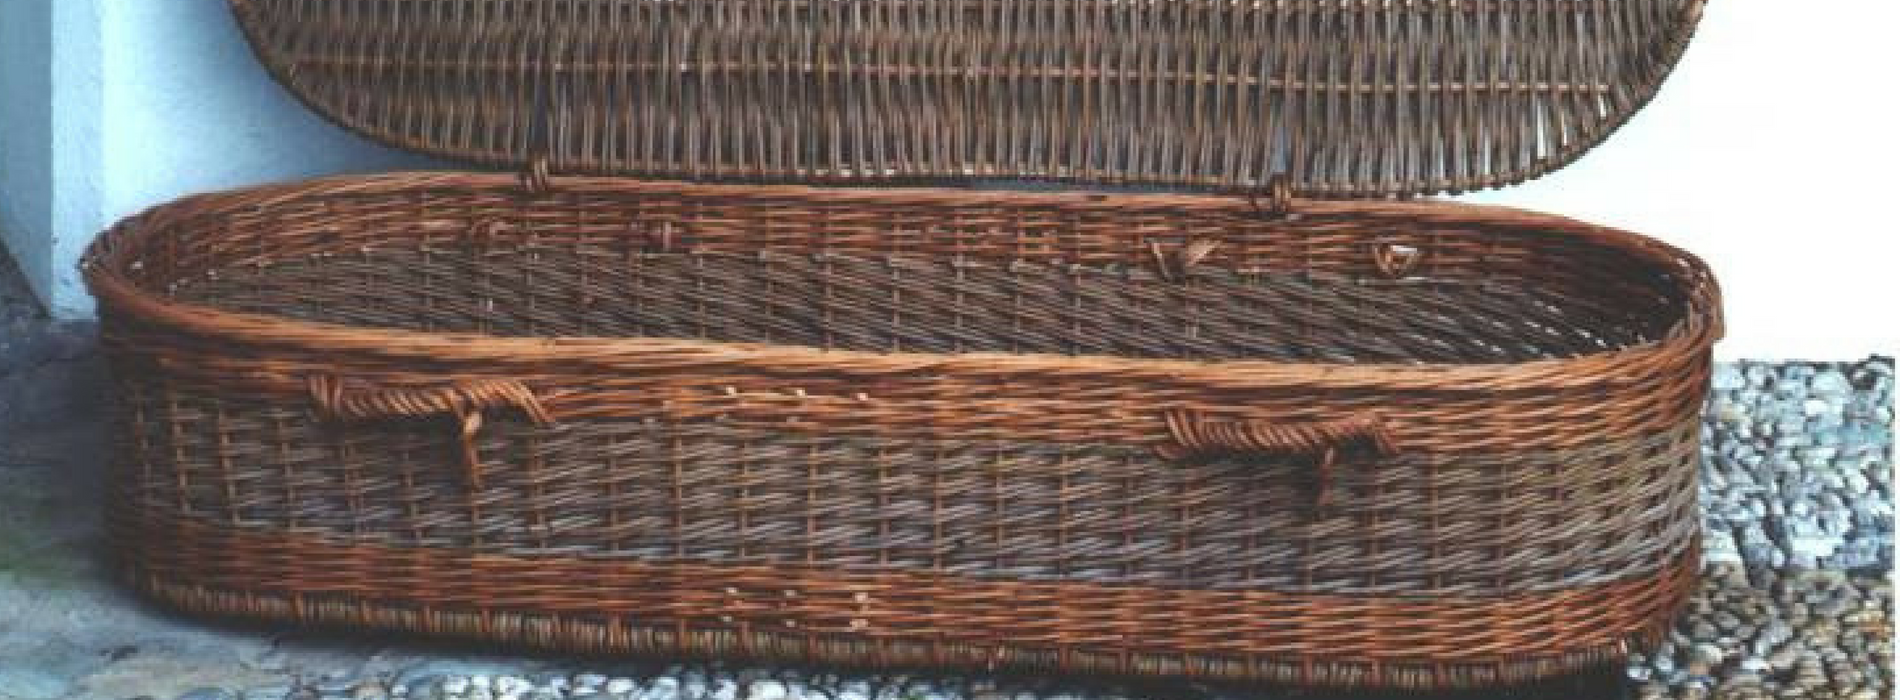 Wyldwood Willow Wicker Coffin